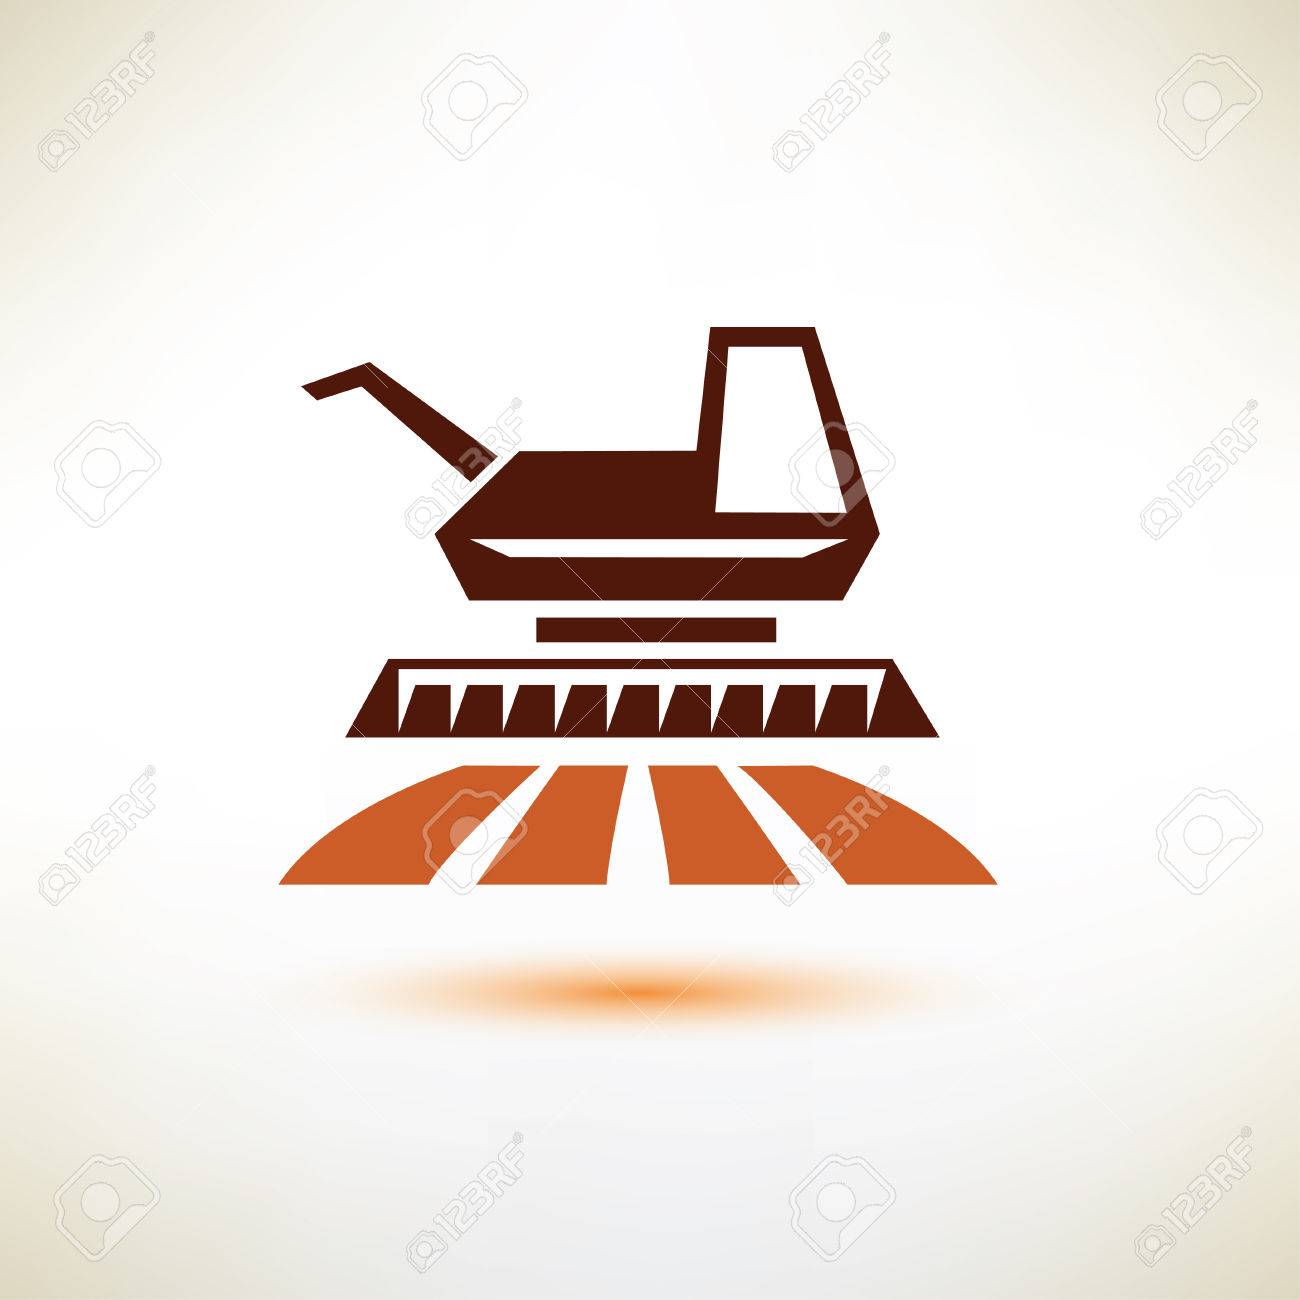 Harvester Symbol Agriculture Concept Royalty Free Cliparts Vectors